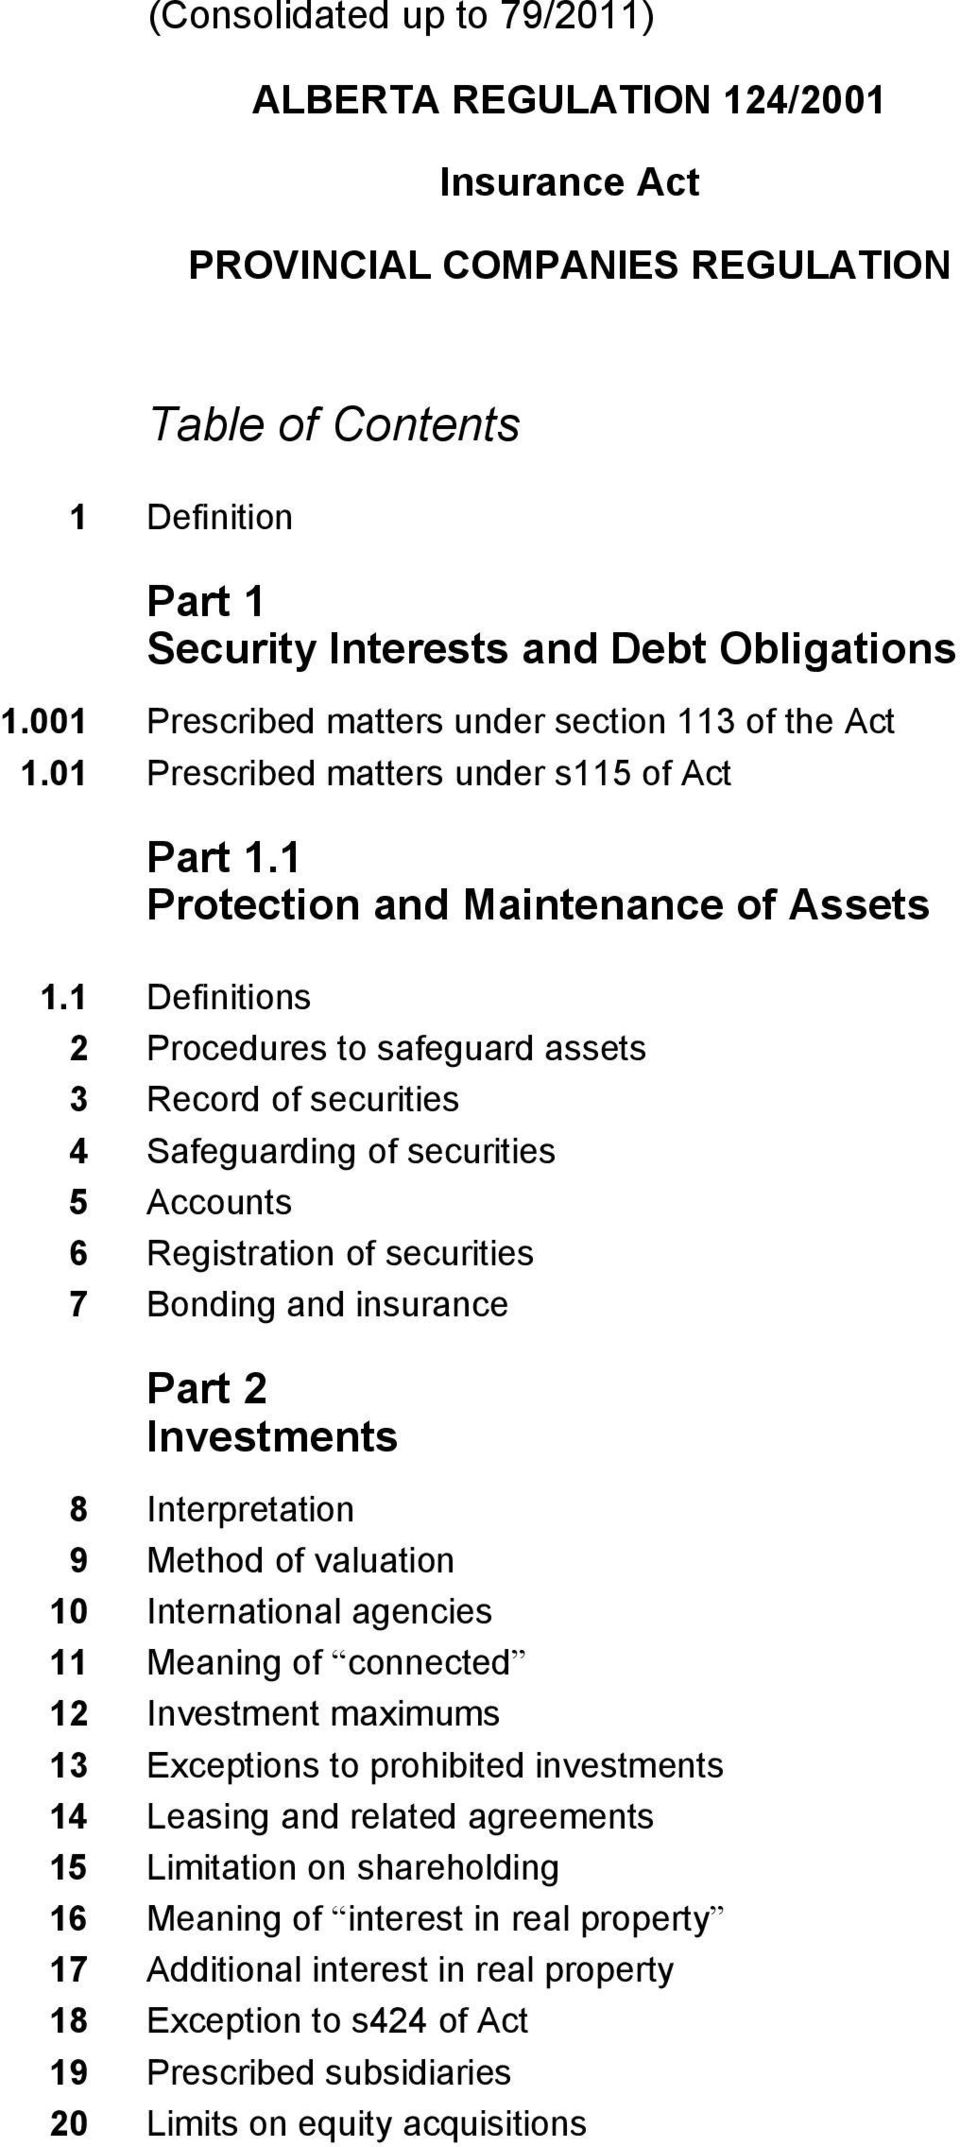 1 Definitions 2 Procedures to safeguard assets 3 Record of securities 4 Safeguarding of securities 5 Accounts 6 Registration of securities 7 Bonding and insurance Part 2 Investments 8 Interpretation